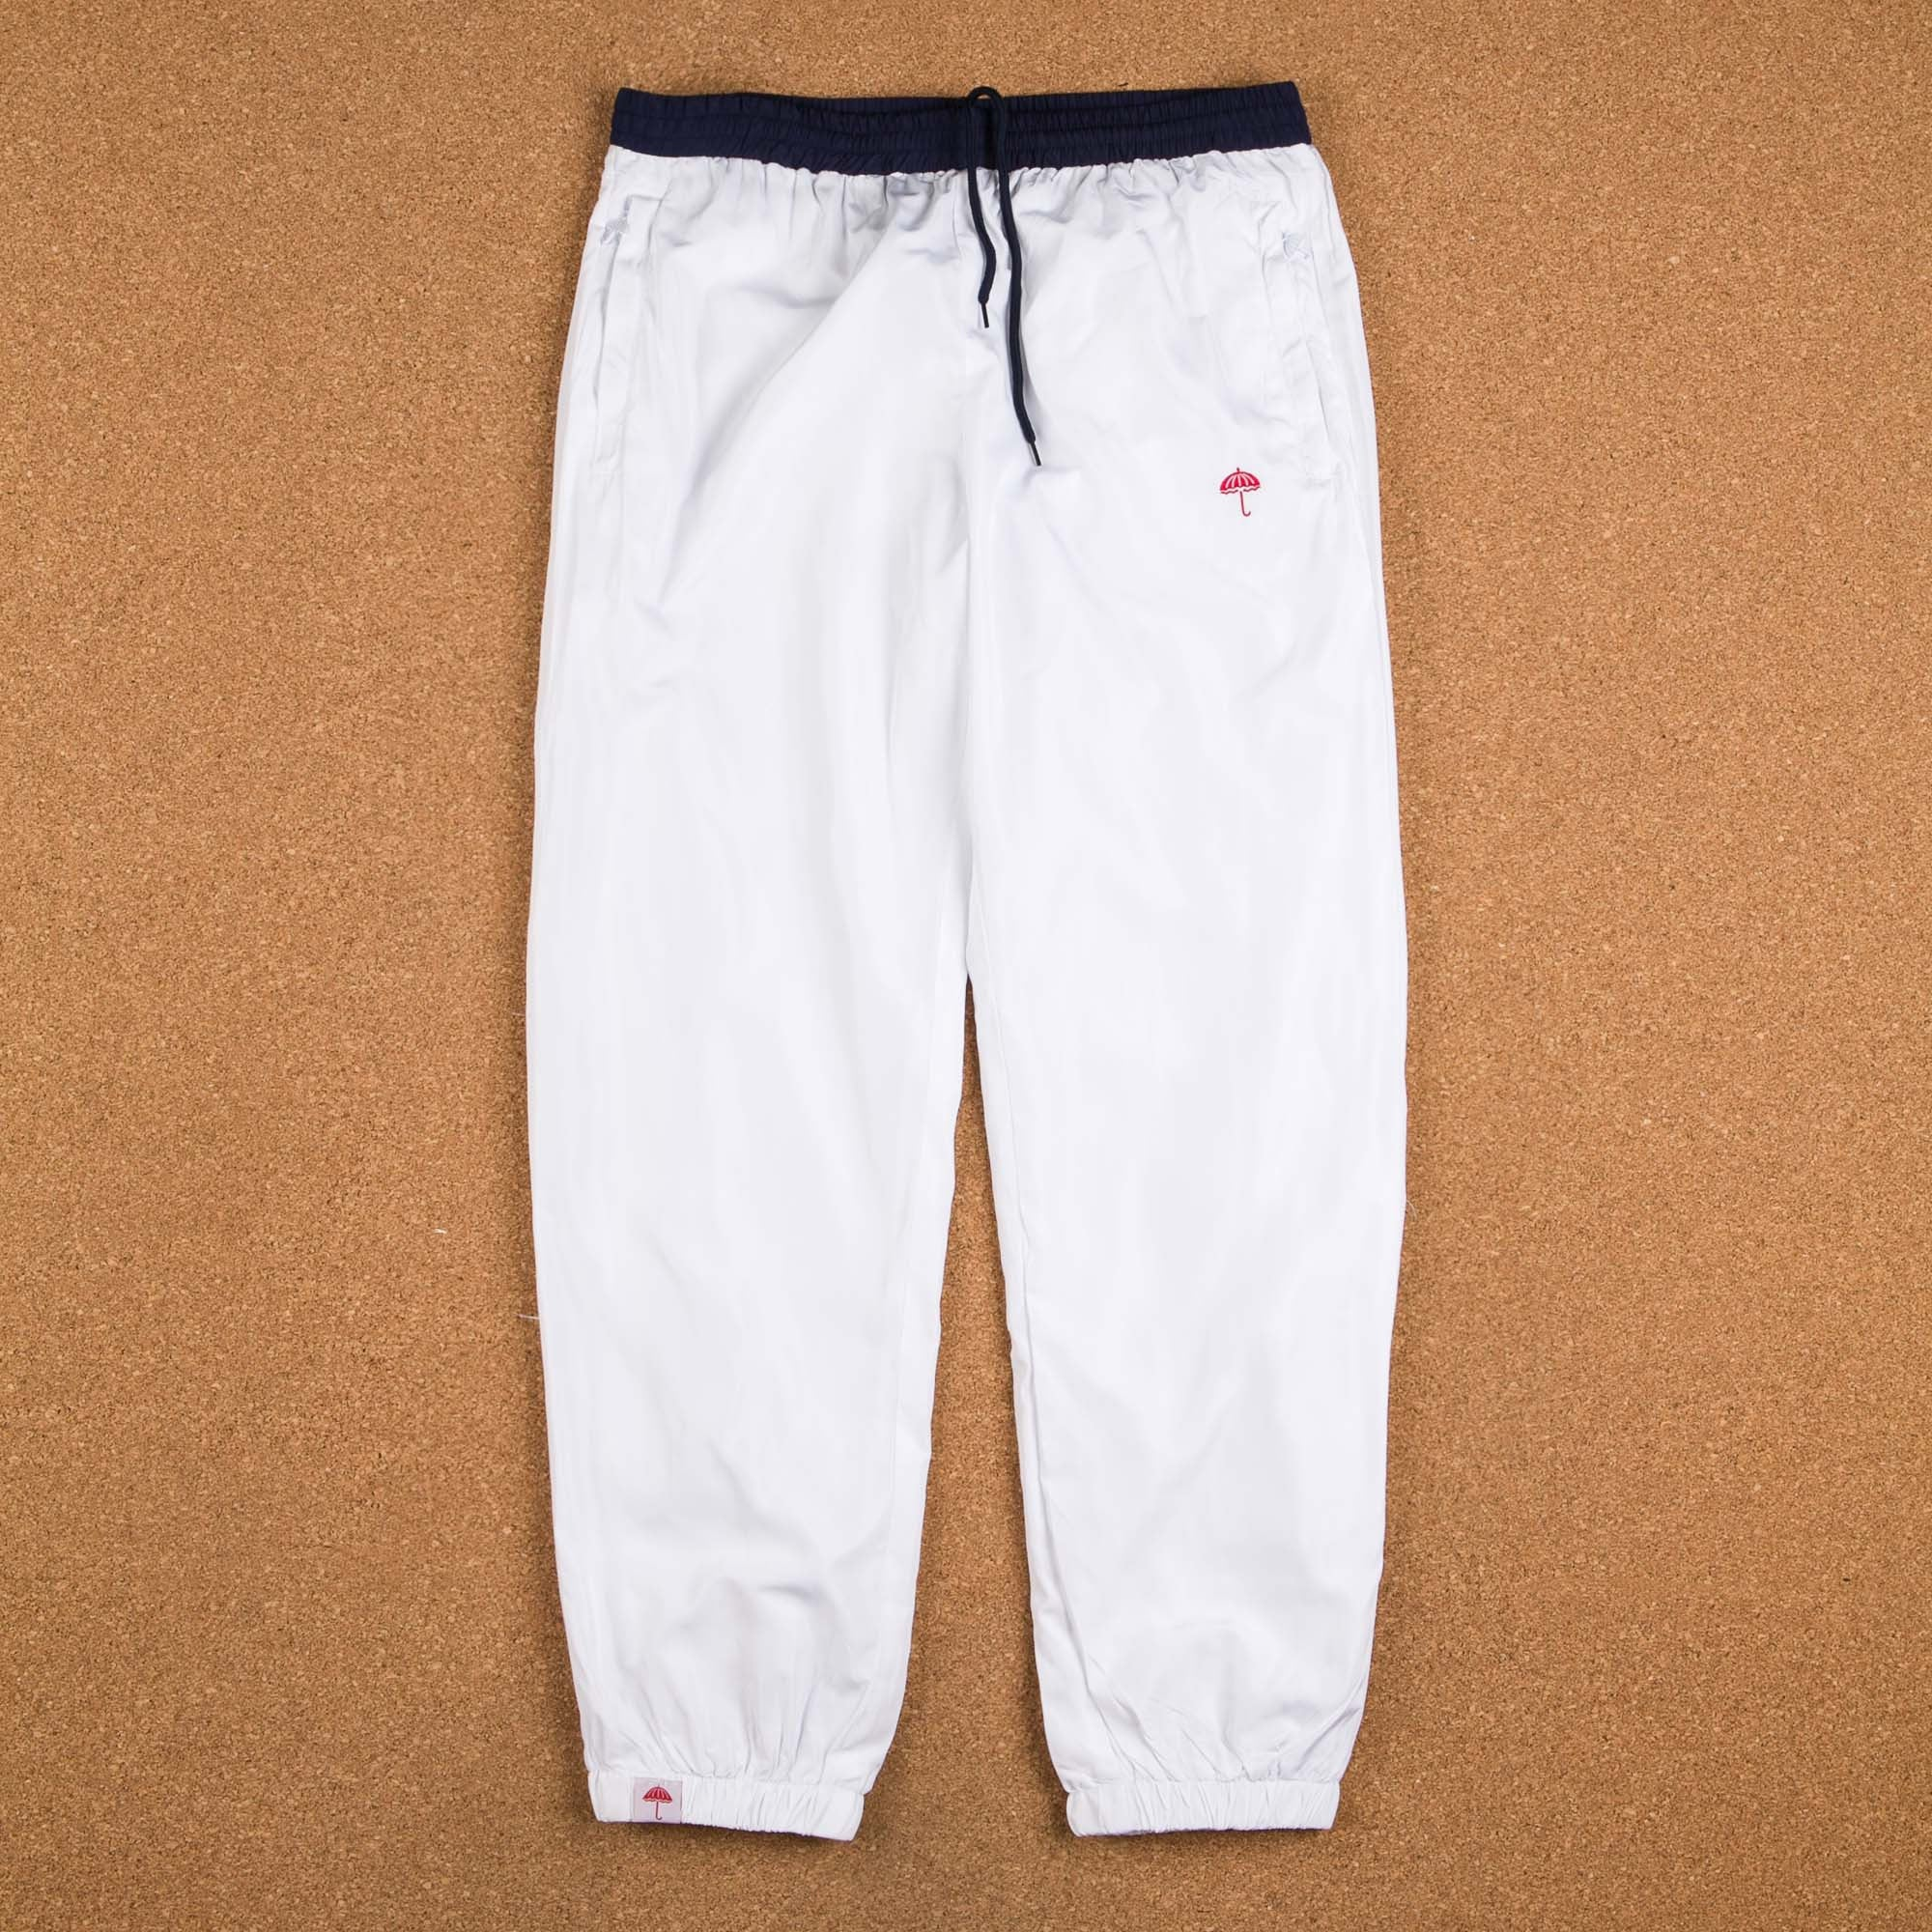 Helas S.U.T Sweatpants - White / Blue